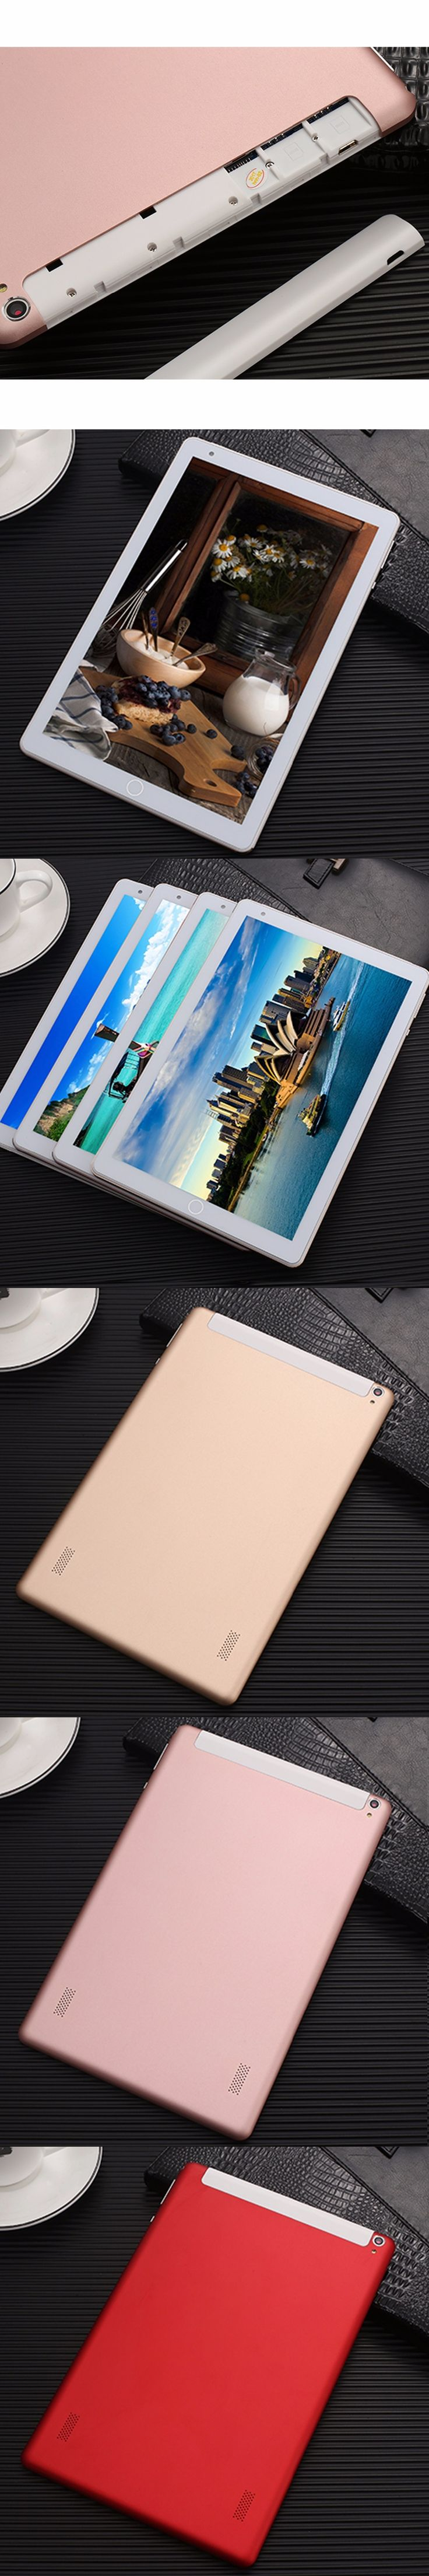 The 9 best tablet images on pinterest android core and 10 inch tablet 2018 new 101 inch tablet pc 3g phone call dual sim card android 60 octa core fandeluxe Gallery